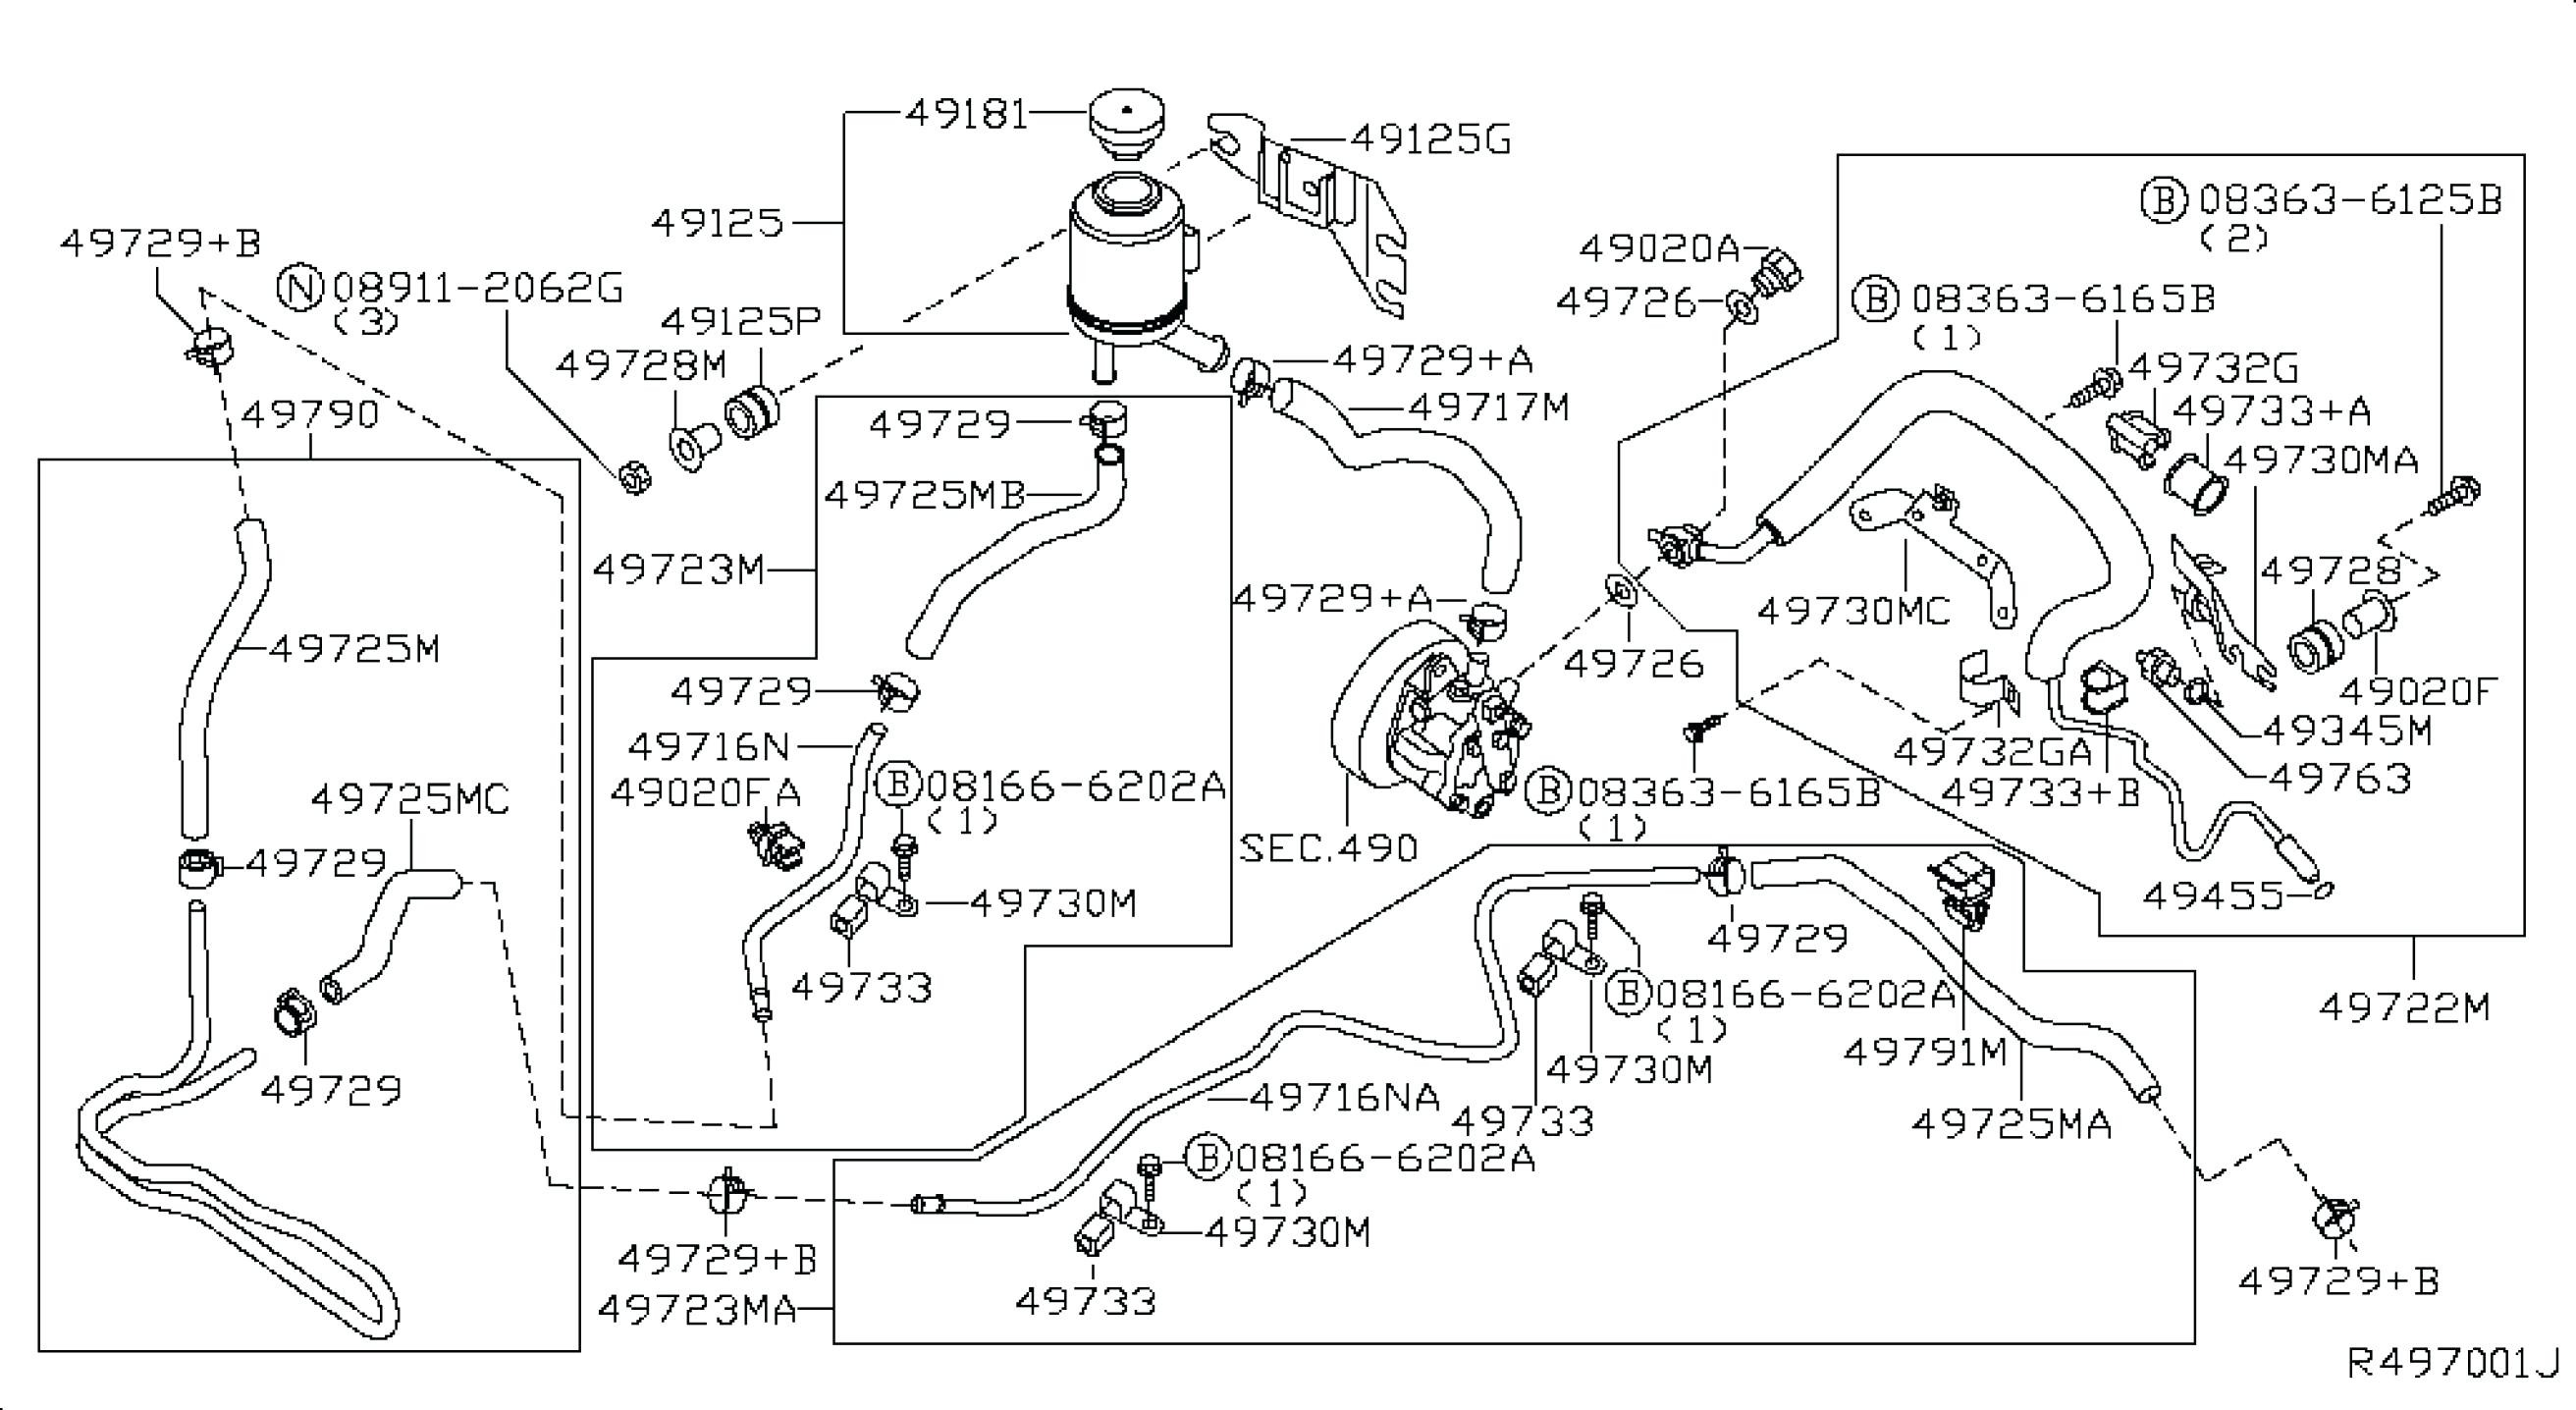 2007 Subaru Impreza Wiring Diagrams Simple Guide About Diagram 2002 Forester Engine U2022 For Free